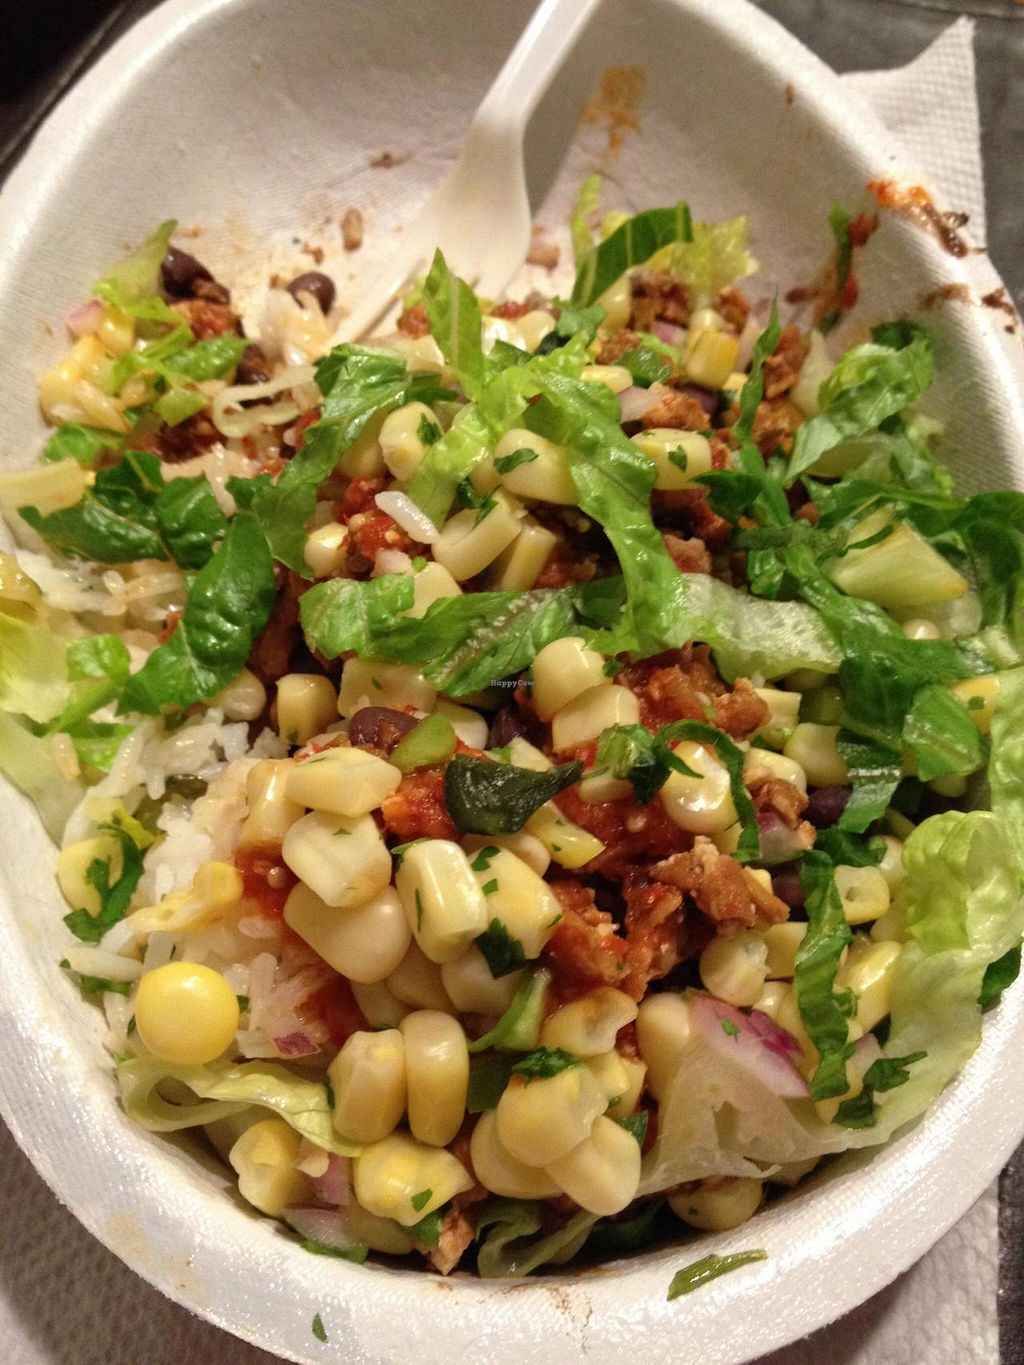 """Photo of Chipotle  by <a href=""""/members/profile/Tigra220"""">Tigra220</a> <br/>My sofritas bowl: 1/2 white, 1/2 brown rice, sofritas, black beans, corn salsa, hot salsa, & lettuce <br/> September 2, 2014  - <a href='/contact/abuse/image/50925/78876'>Report</a>"""